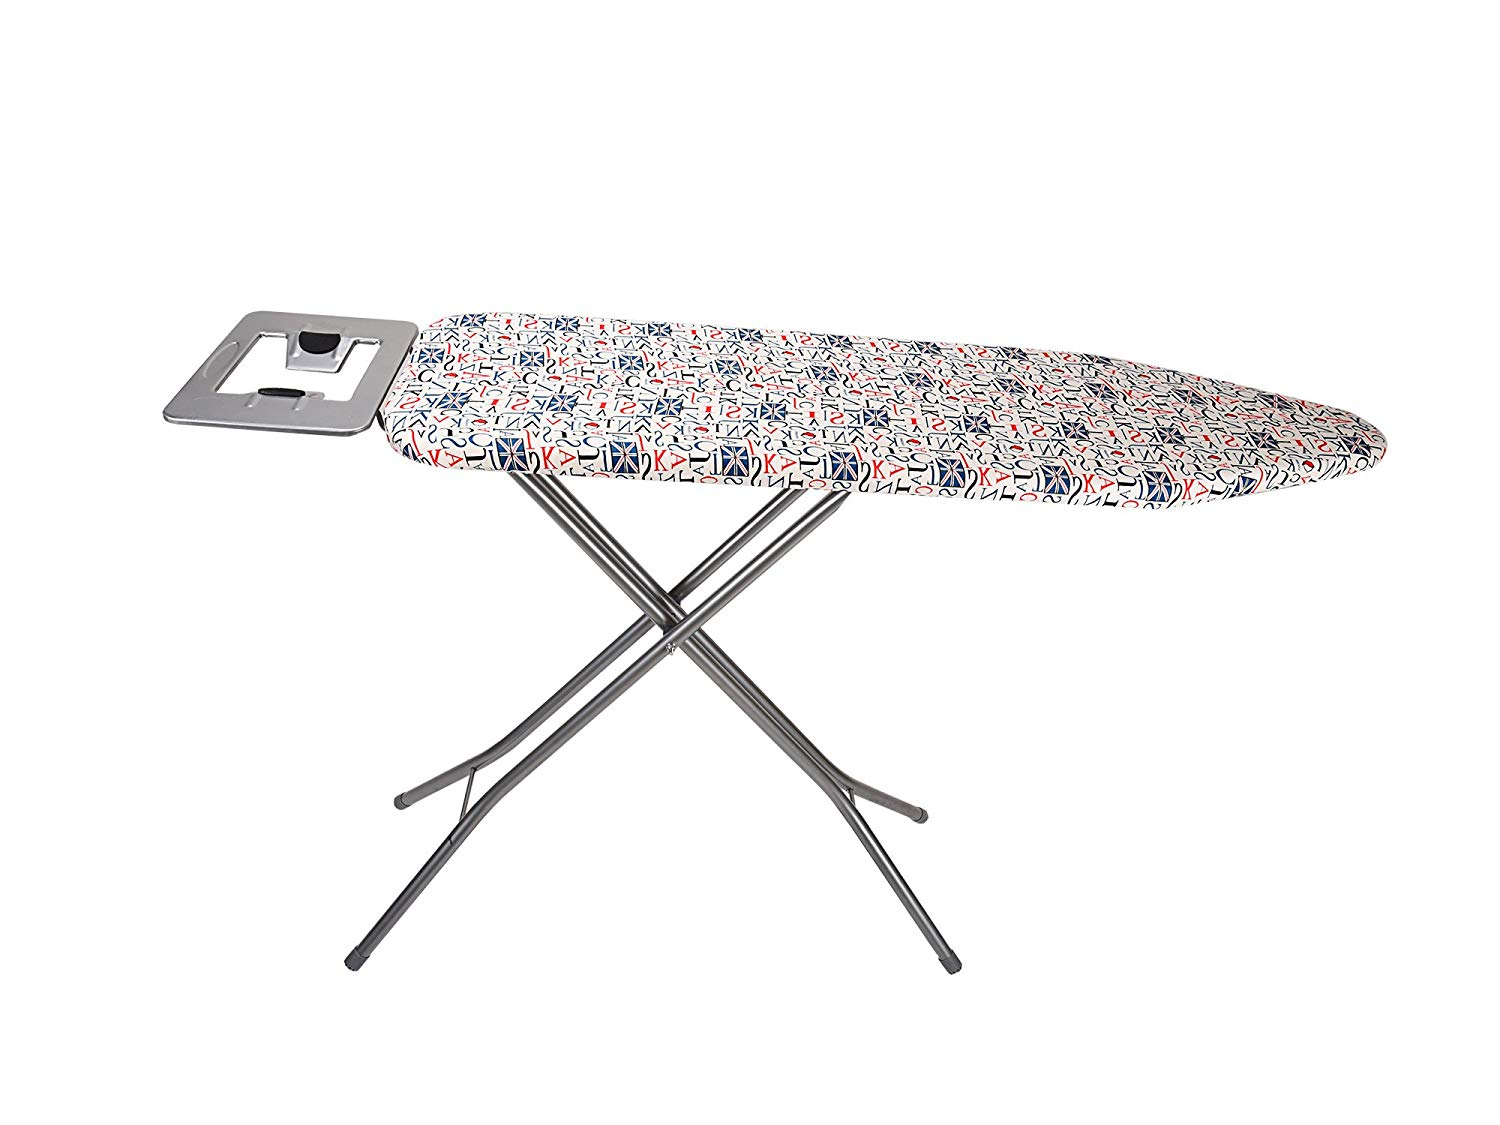 Paffy Ironing Board with Iron Holder